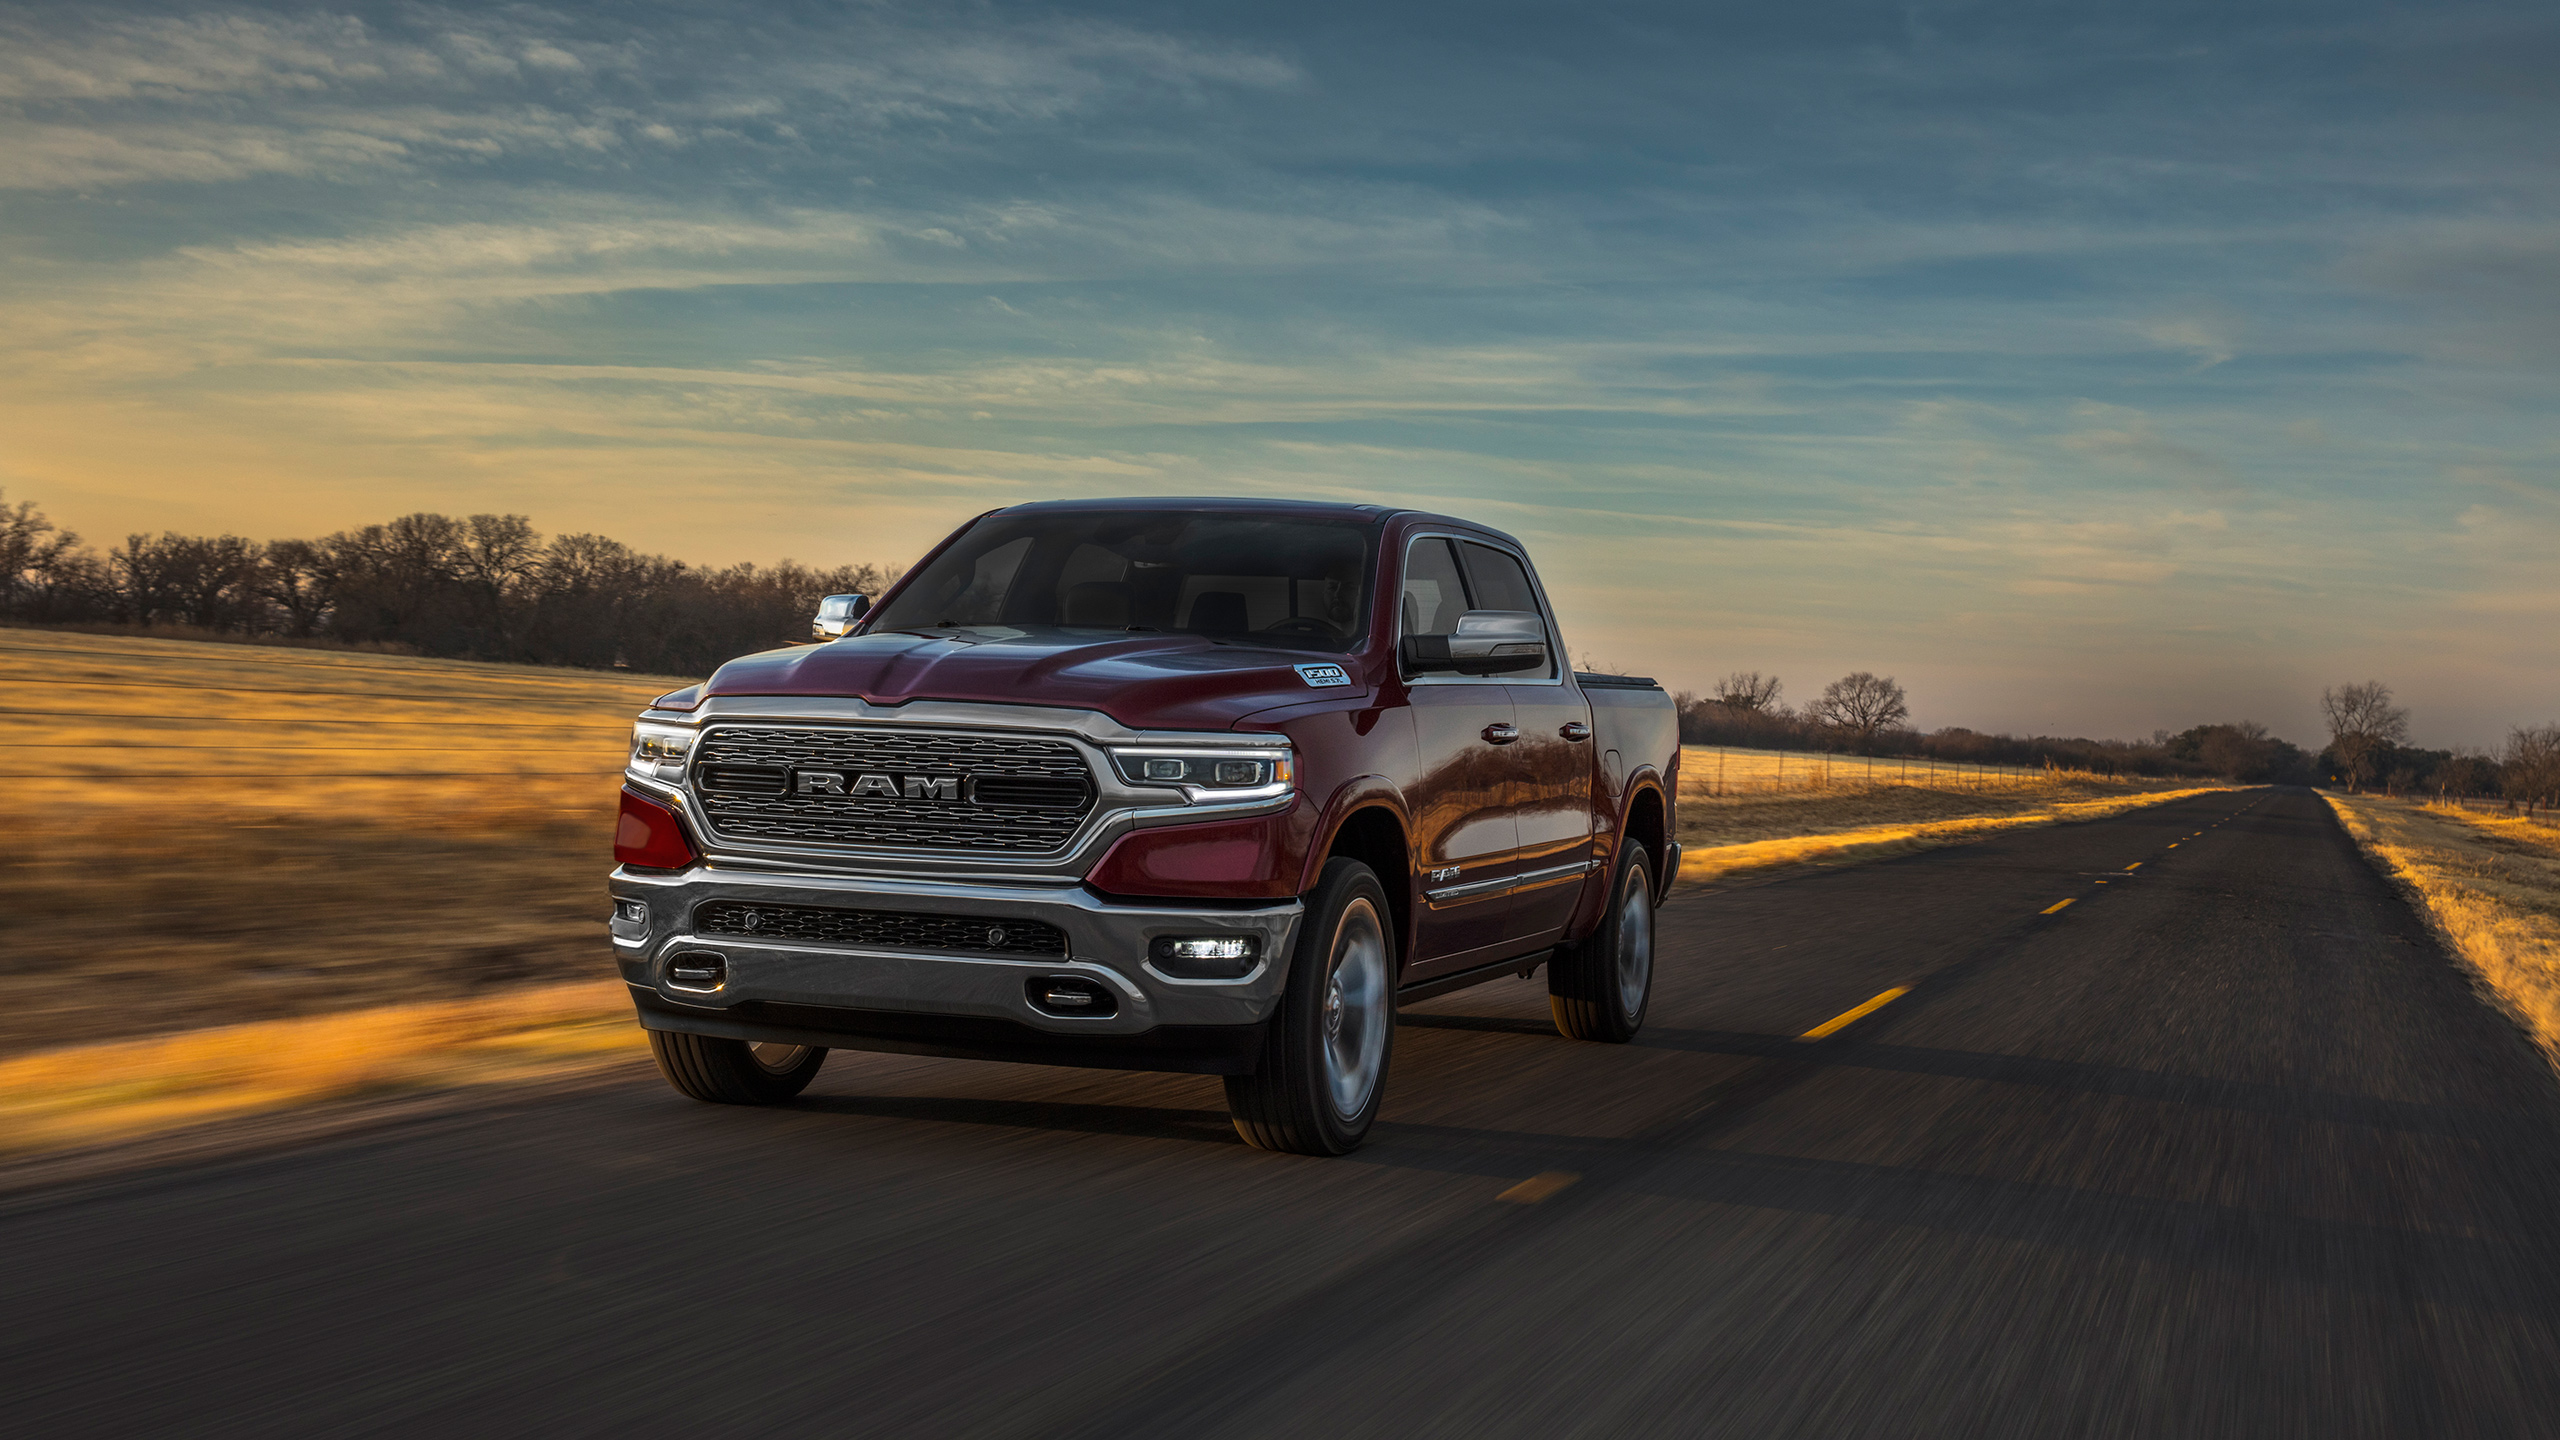 2019 Ram 1500 Limited Crew Cab Wallpaper Hd Car Wallpapers Id